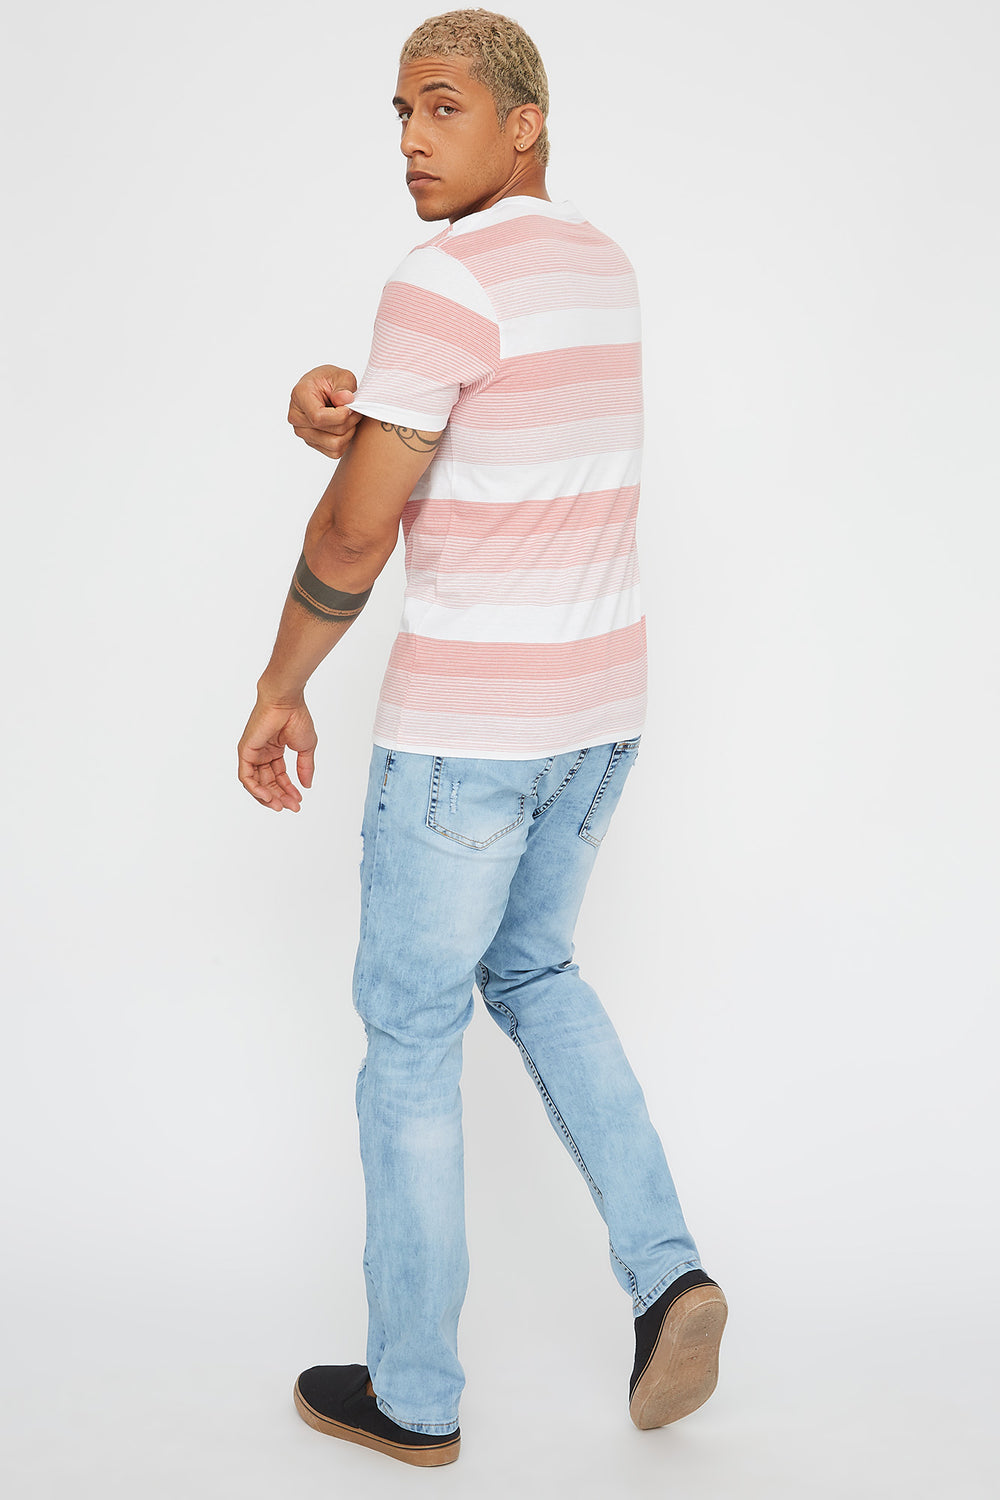 Striped V-Neck Pocket T-Shirt Pink